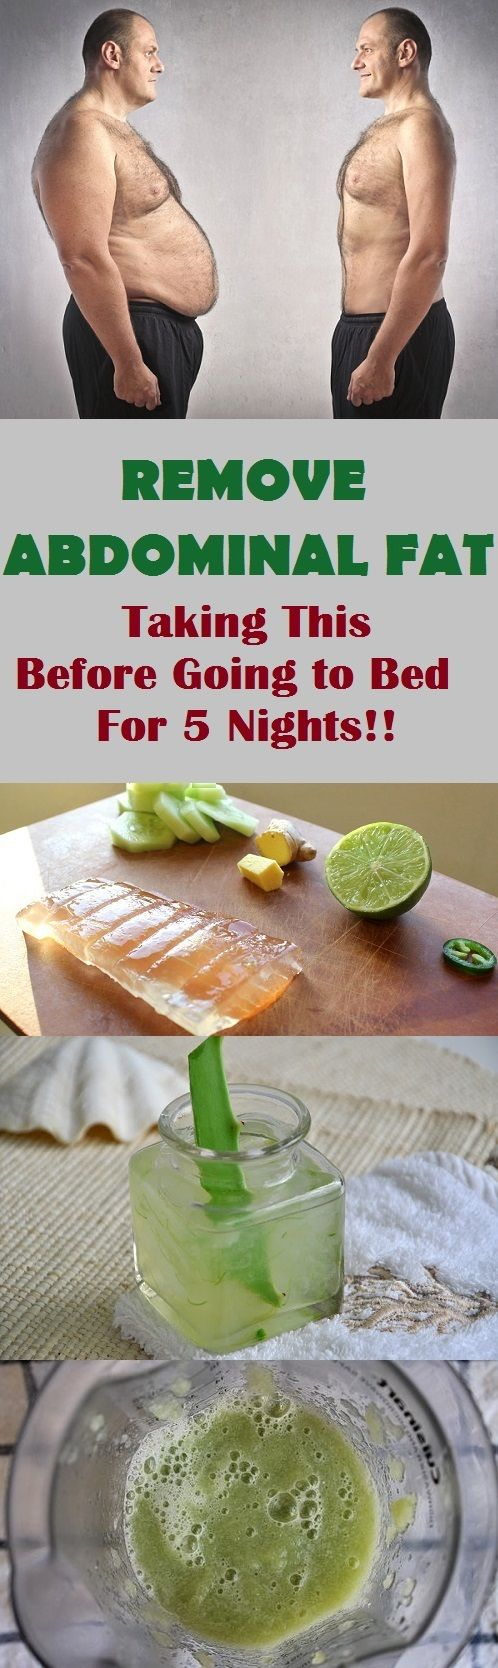 #health #beauty #recipes #lifestyle #dieting #body